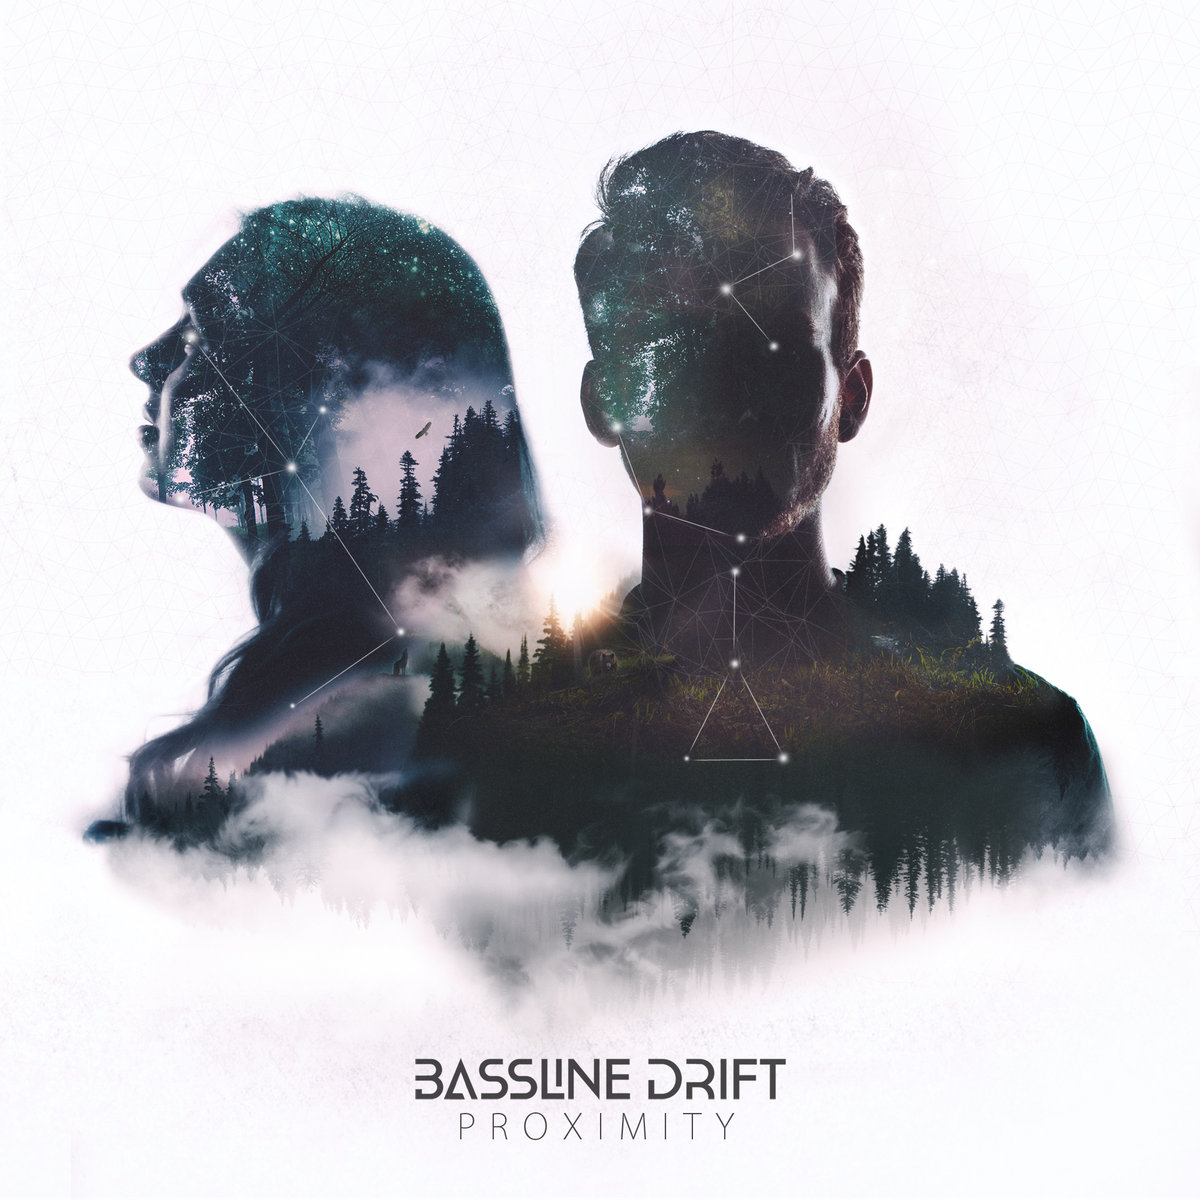 Bassline Drift - I Don't Know How To Be In Love @ 'Proximity' album (downtempo, dubstep)